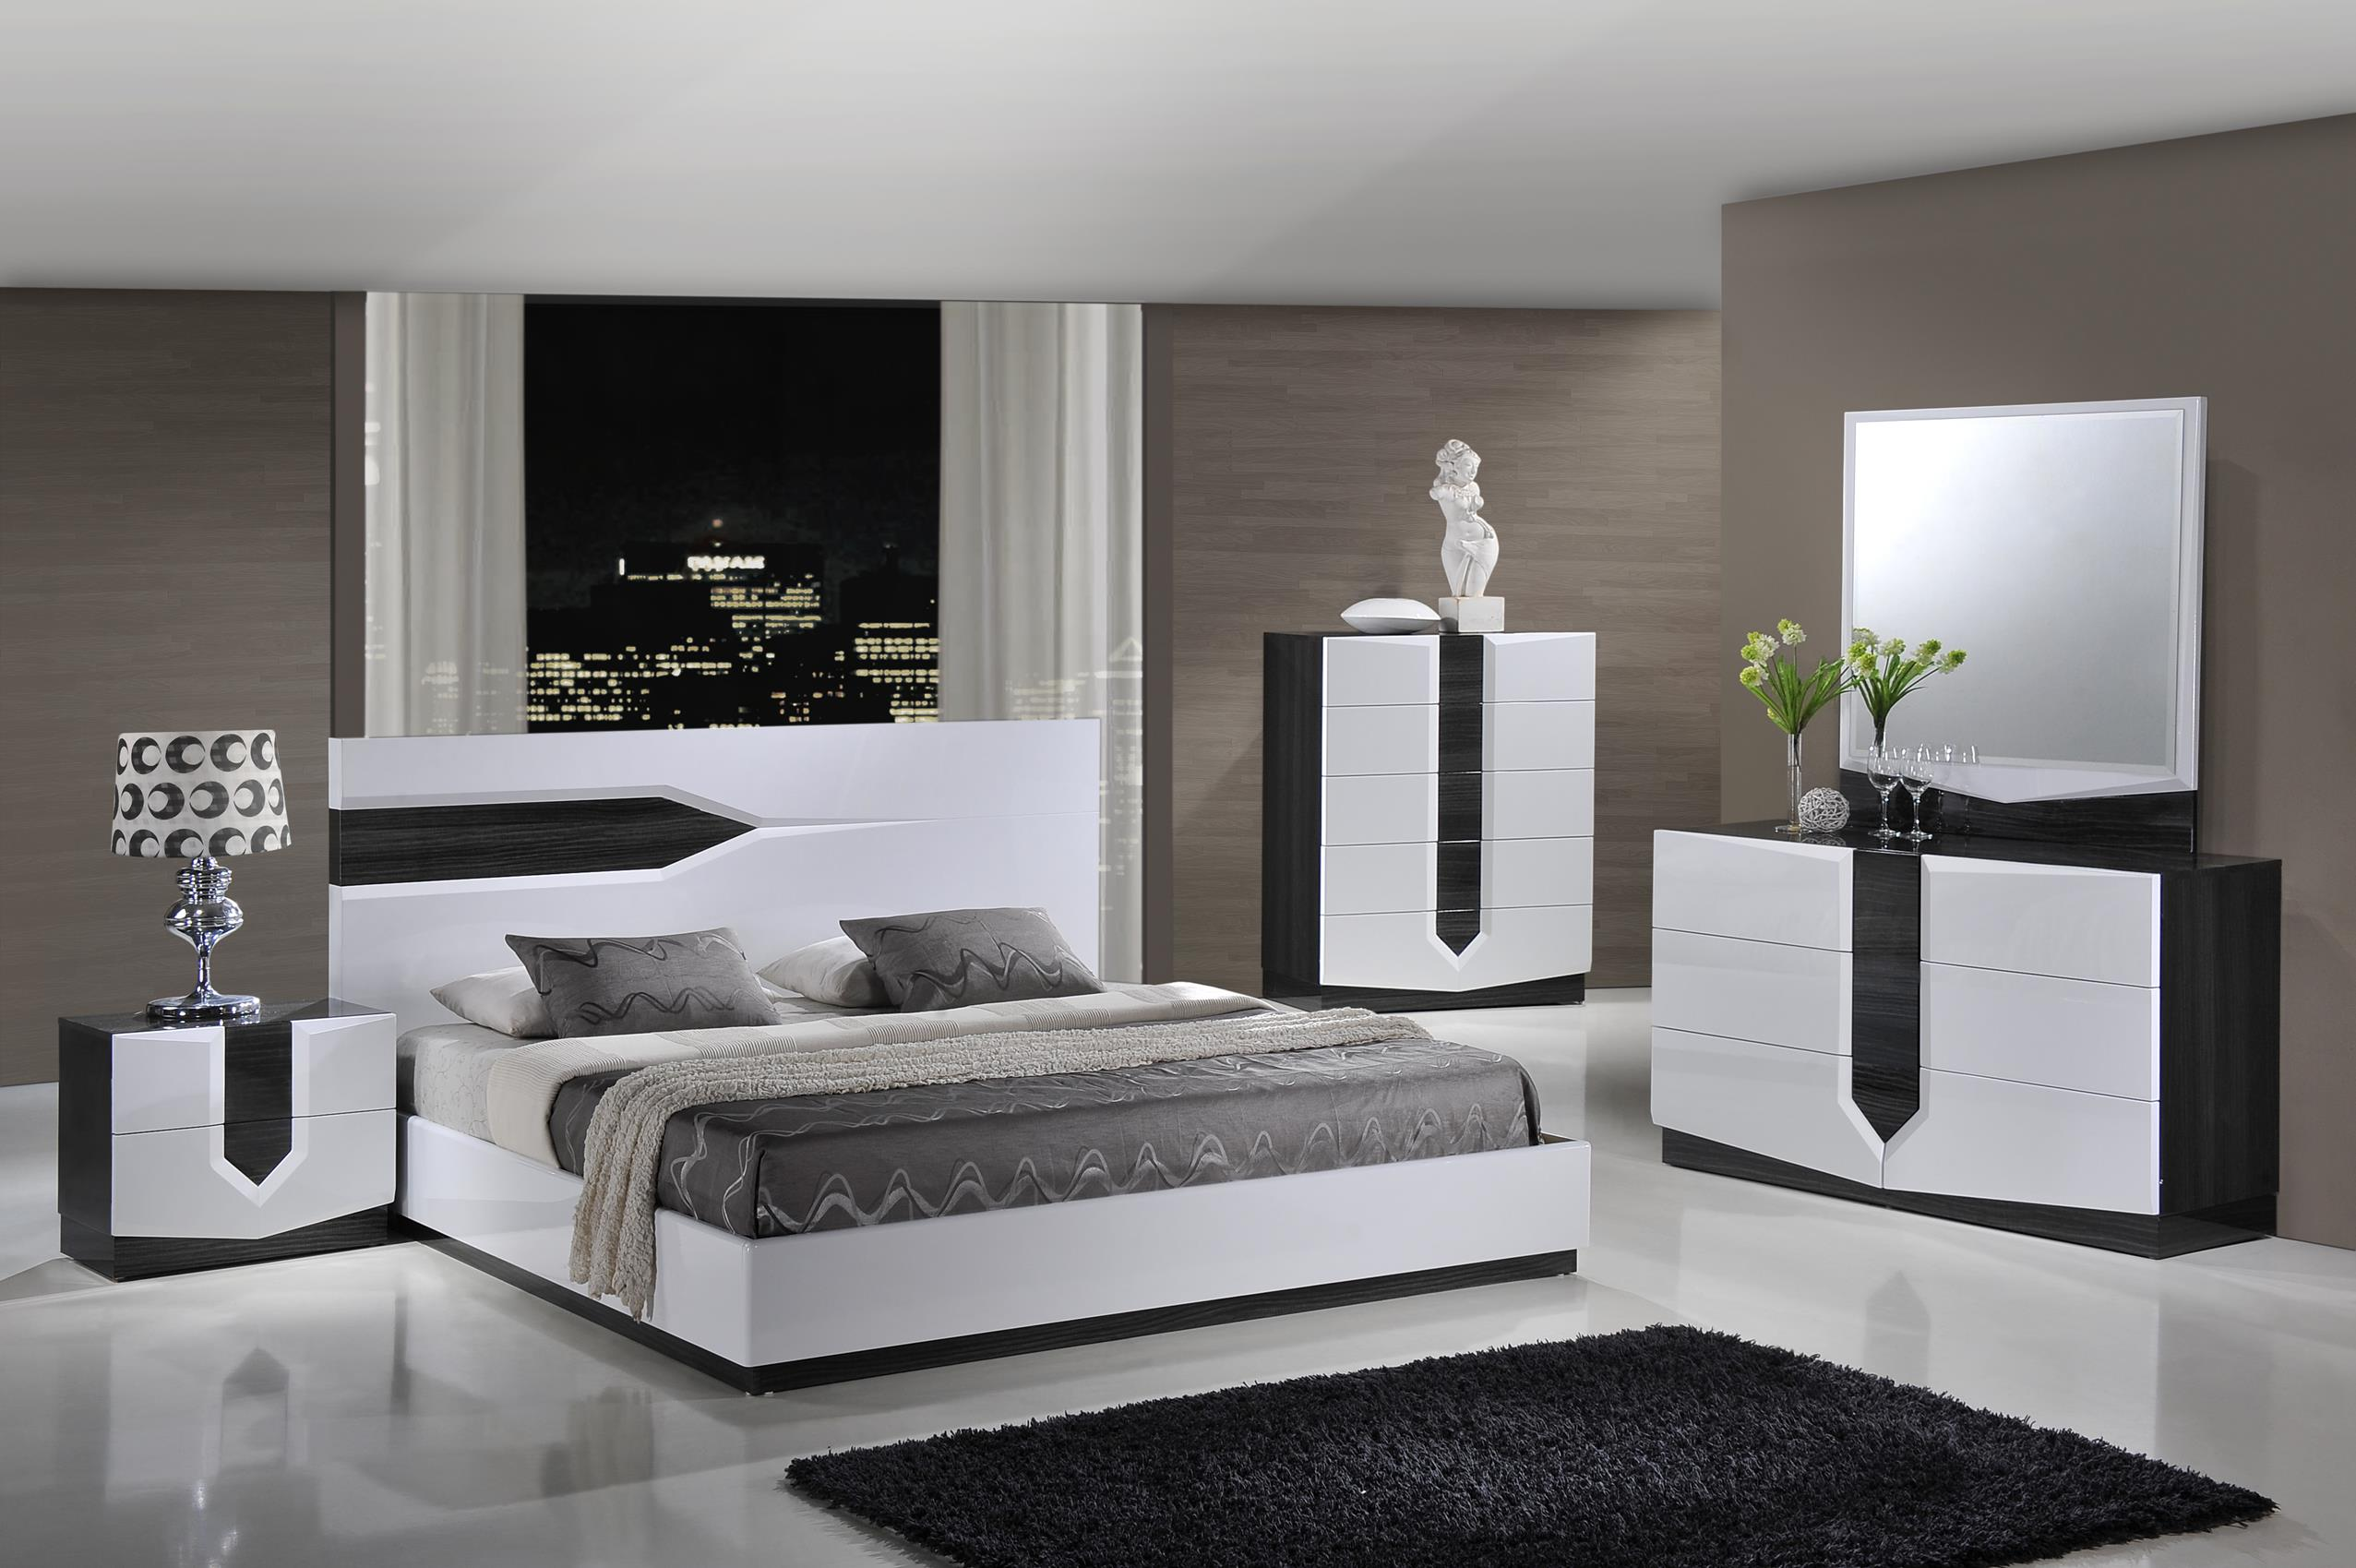 black or white furniture. view in gallery minimalist white high gloss bedroom furniture ideas bed with cabinets black or d